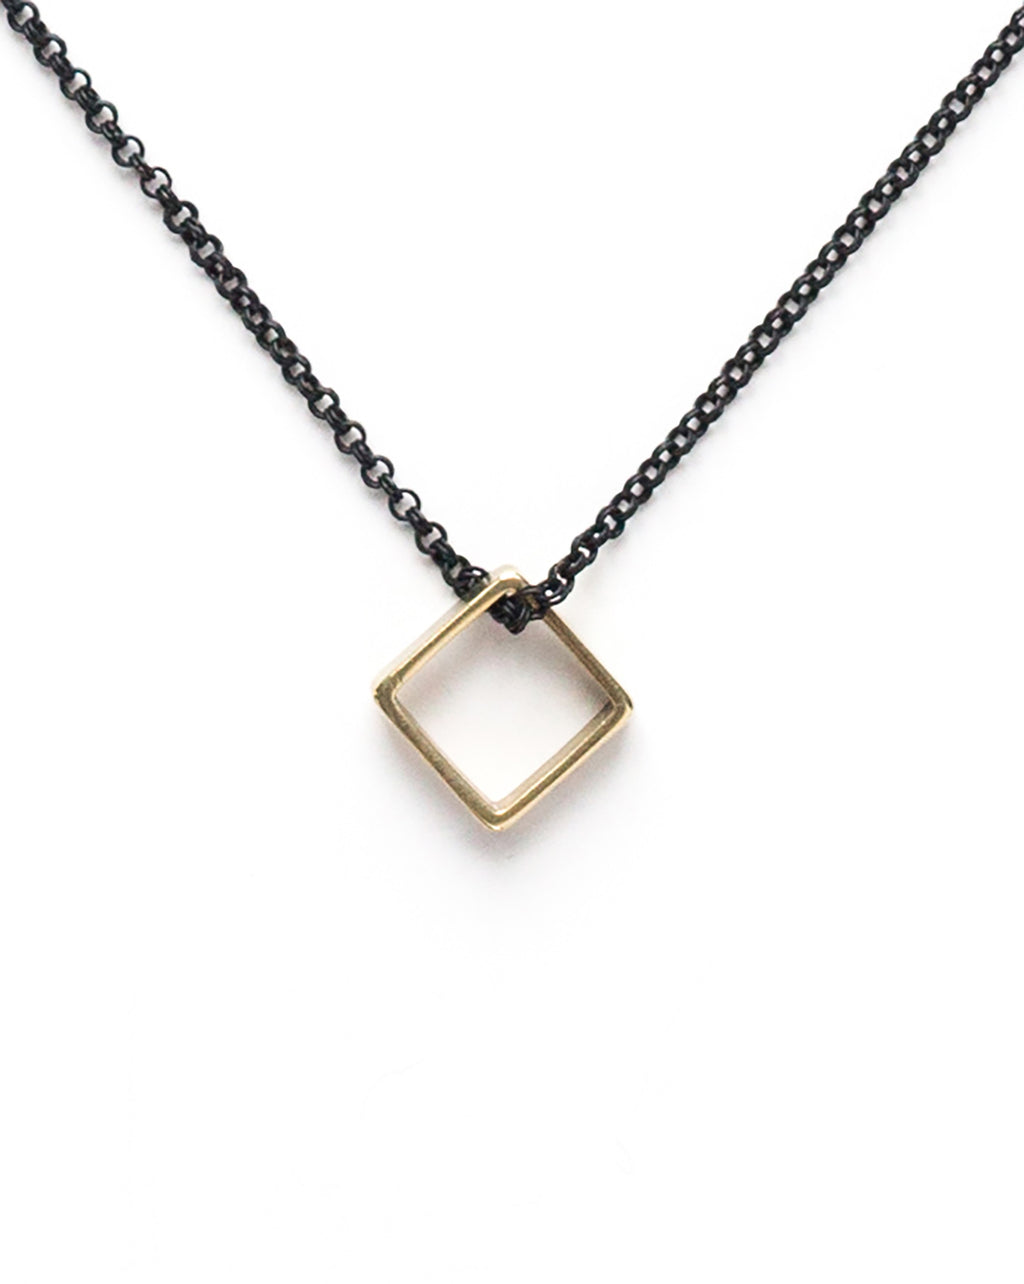 Brass Square Necklace on Black Chain